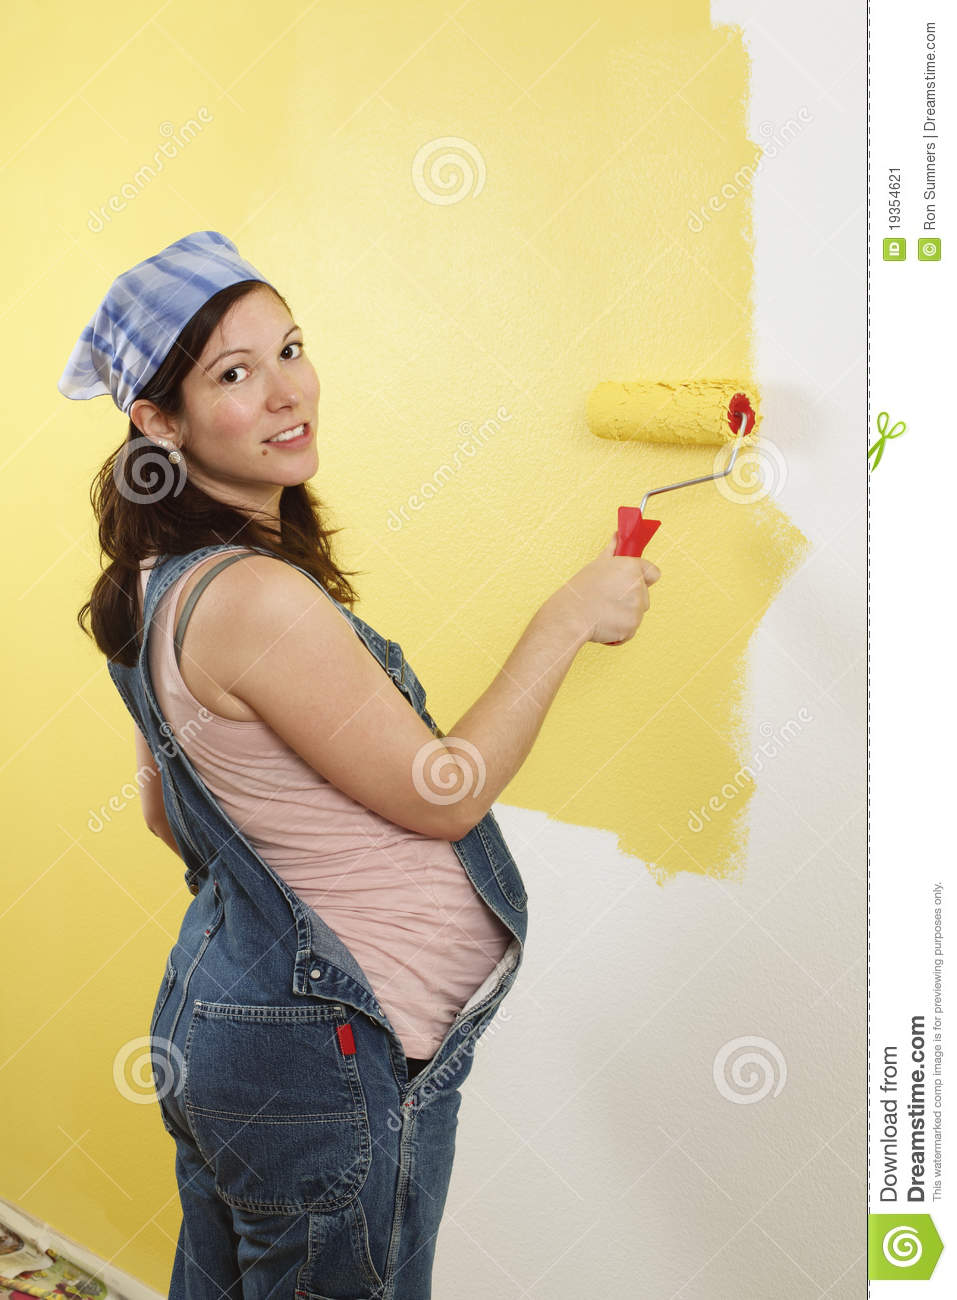 Pregnant Woman Painting Stock Image  Image 19354621